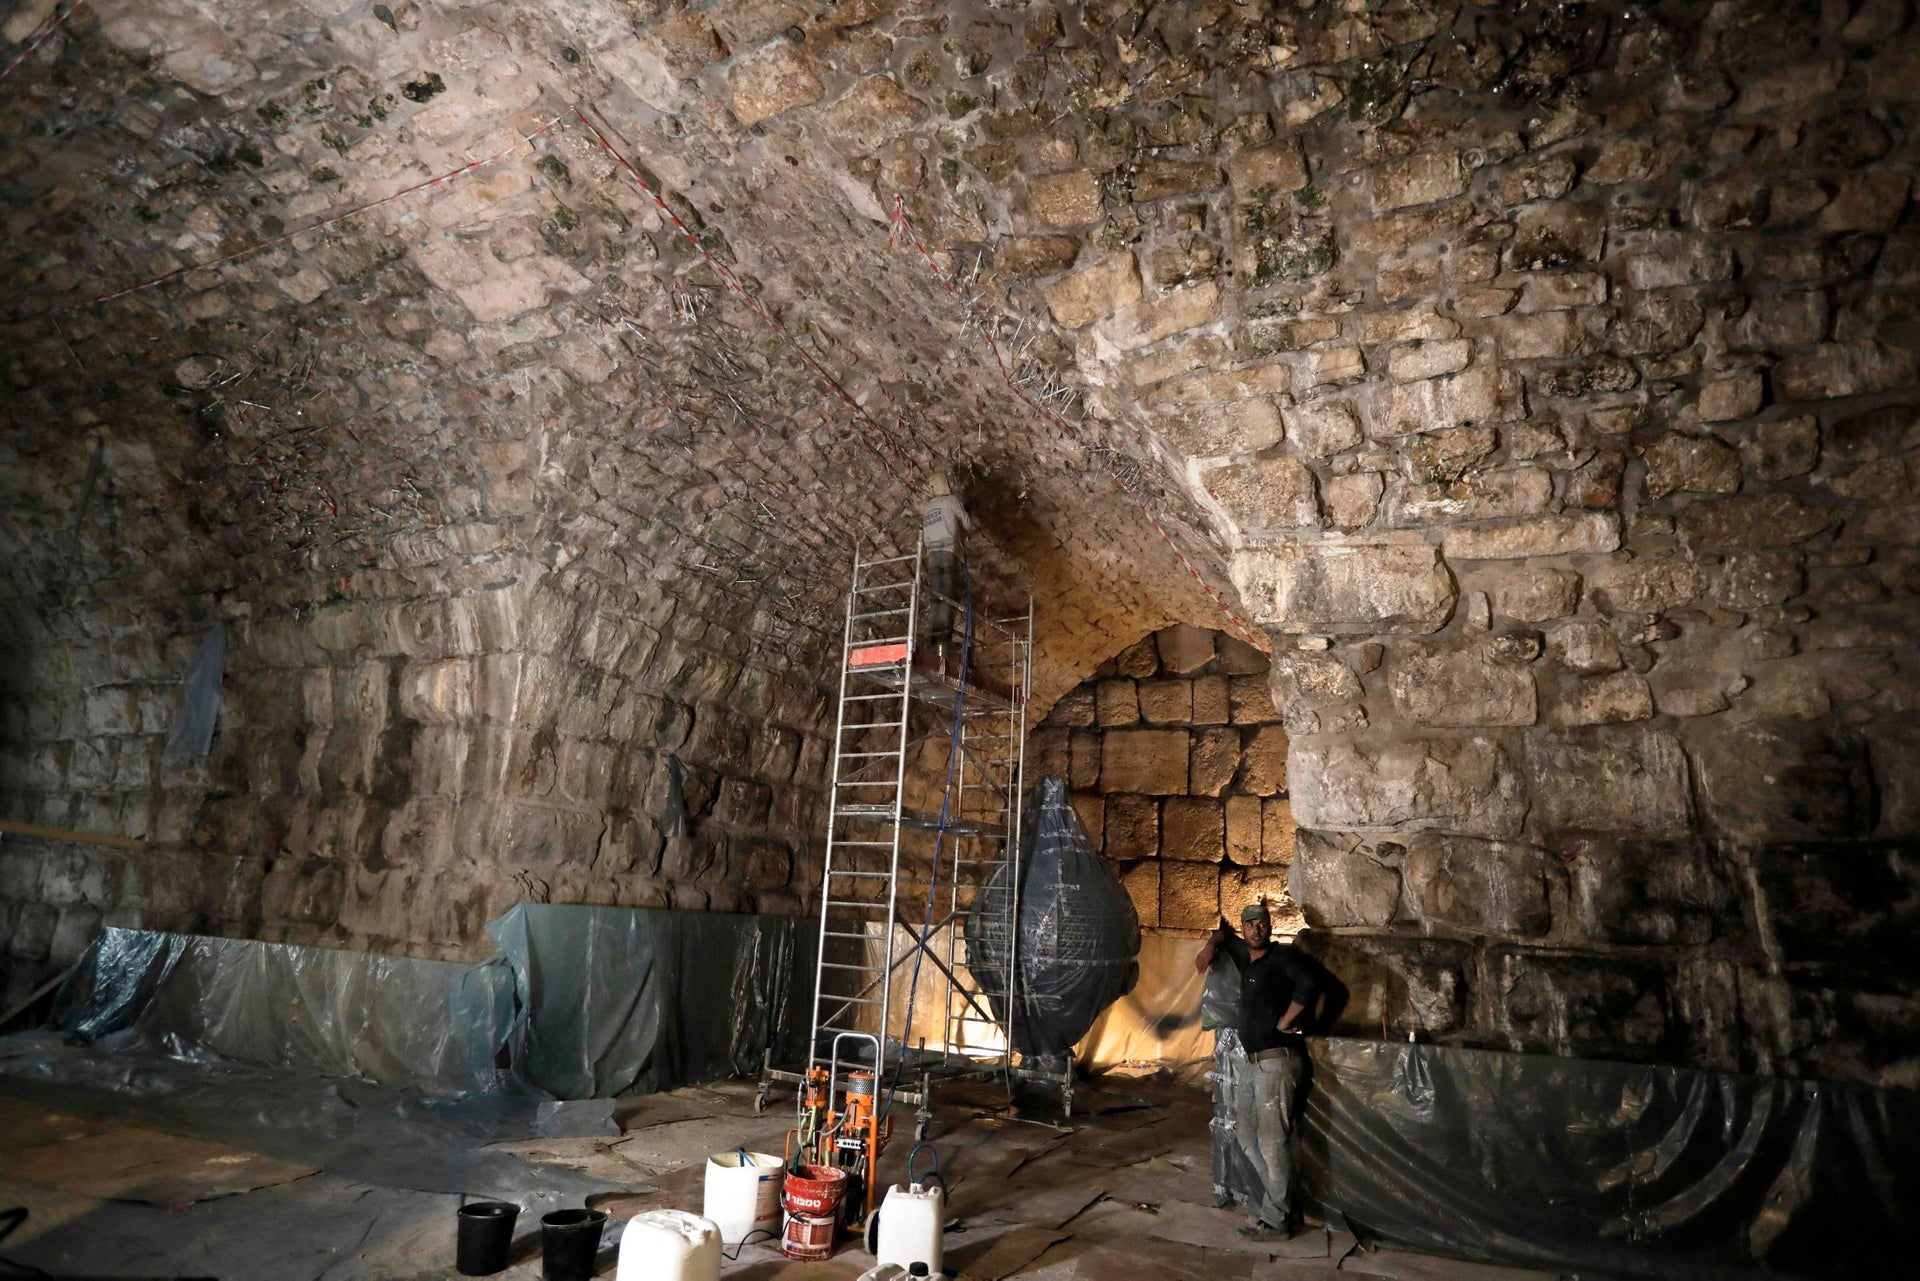 Workers restore a ceiling of the Western Wall tunnels near the site where Israeli Antiquity Authority recently discovered an ancient roman theatre from the second sanctuary in Jerusalem's Old City on October 16, 2017.